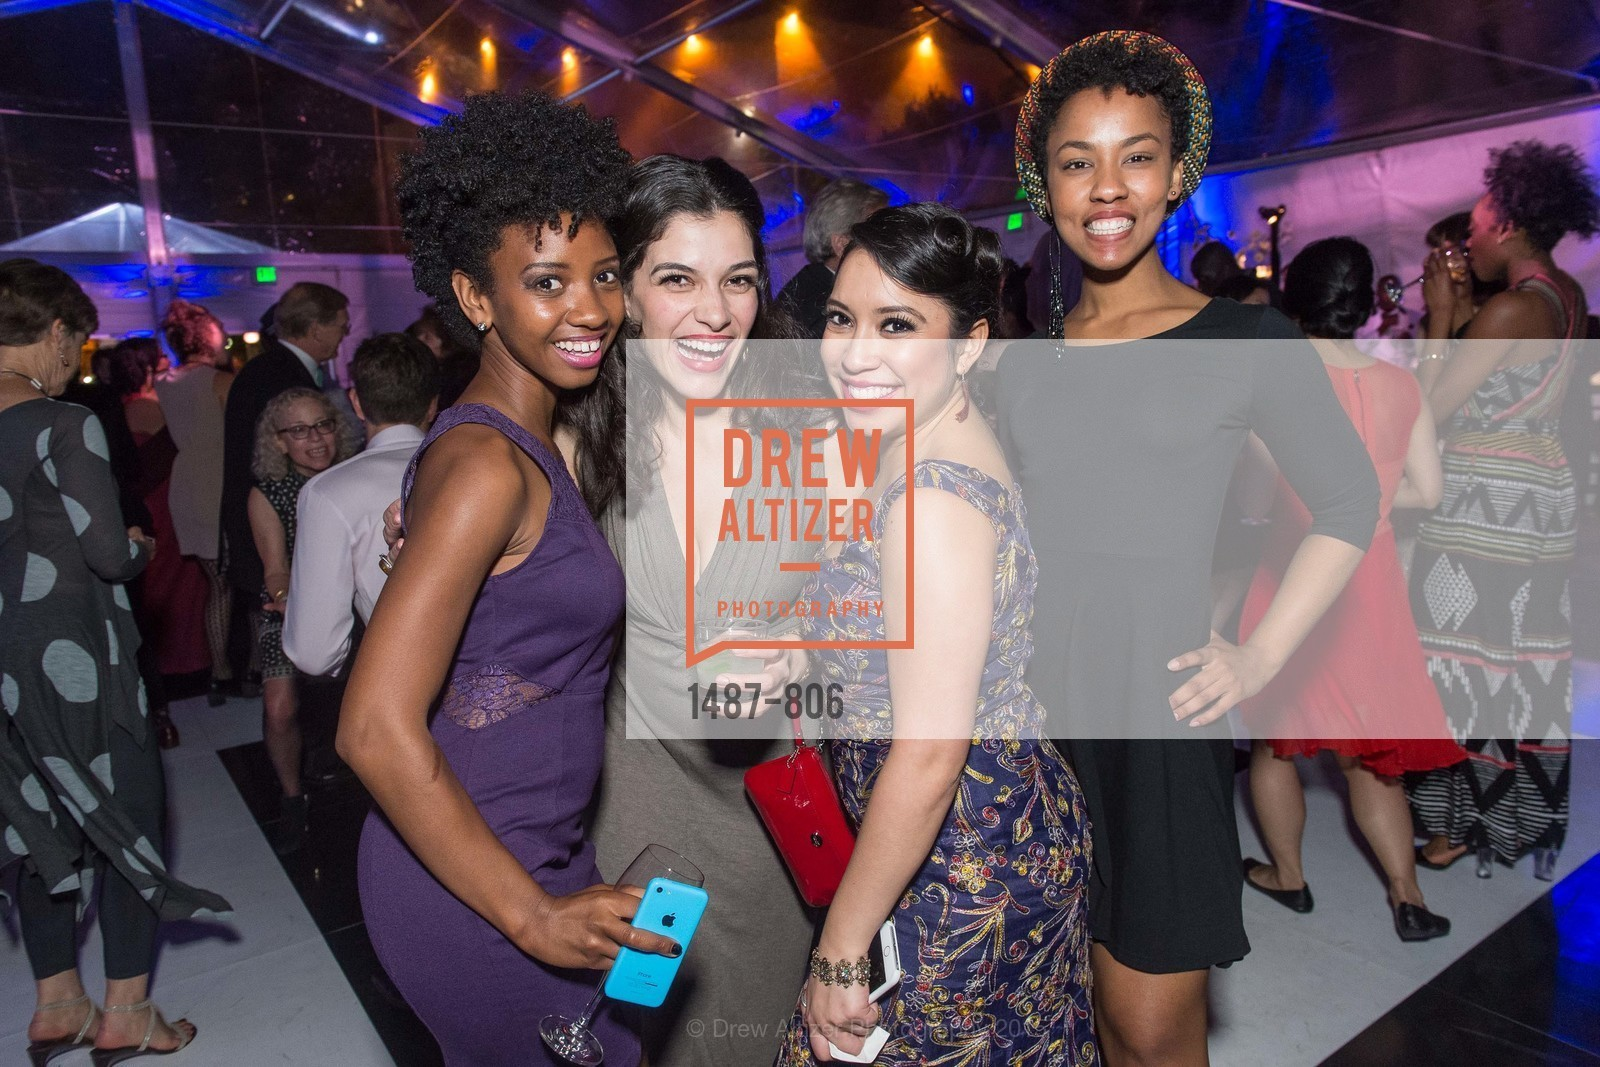 Diana Gonzalez Perez, Josie Alvarez, A.C.T. Gala Come Get Stranded, US, April 26th, 2015,Drew Altizer, Drew Altizer Photography, full-service agency, private events, San Francisco photographer, photographer california